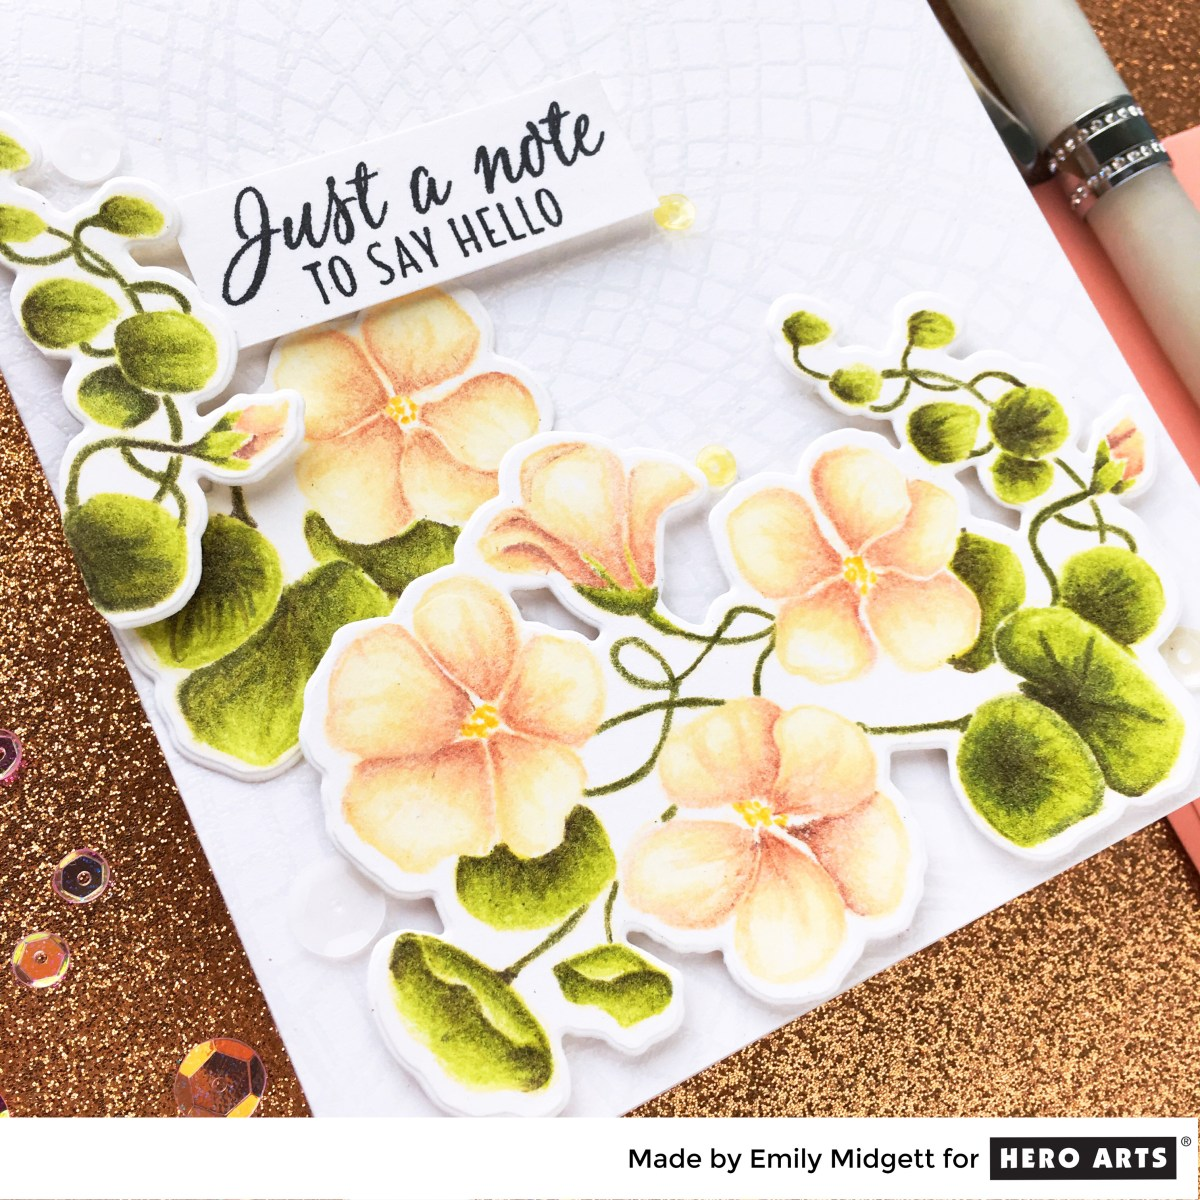 Hero Arts Spring 2018 Catalog Blog Hop!